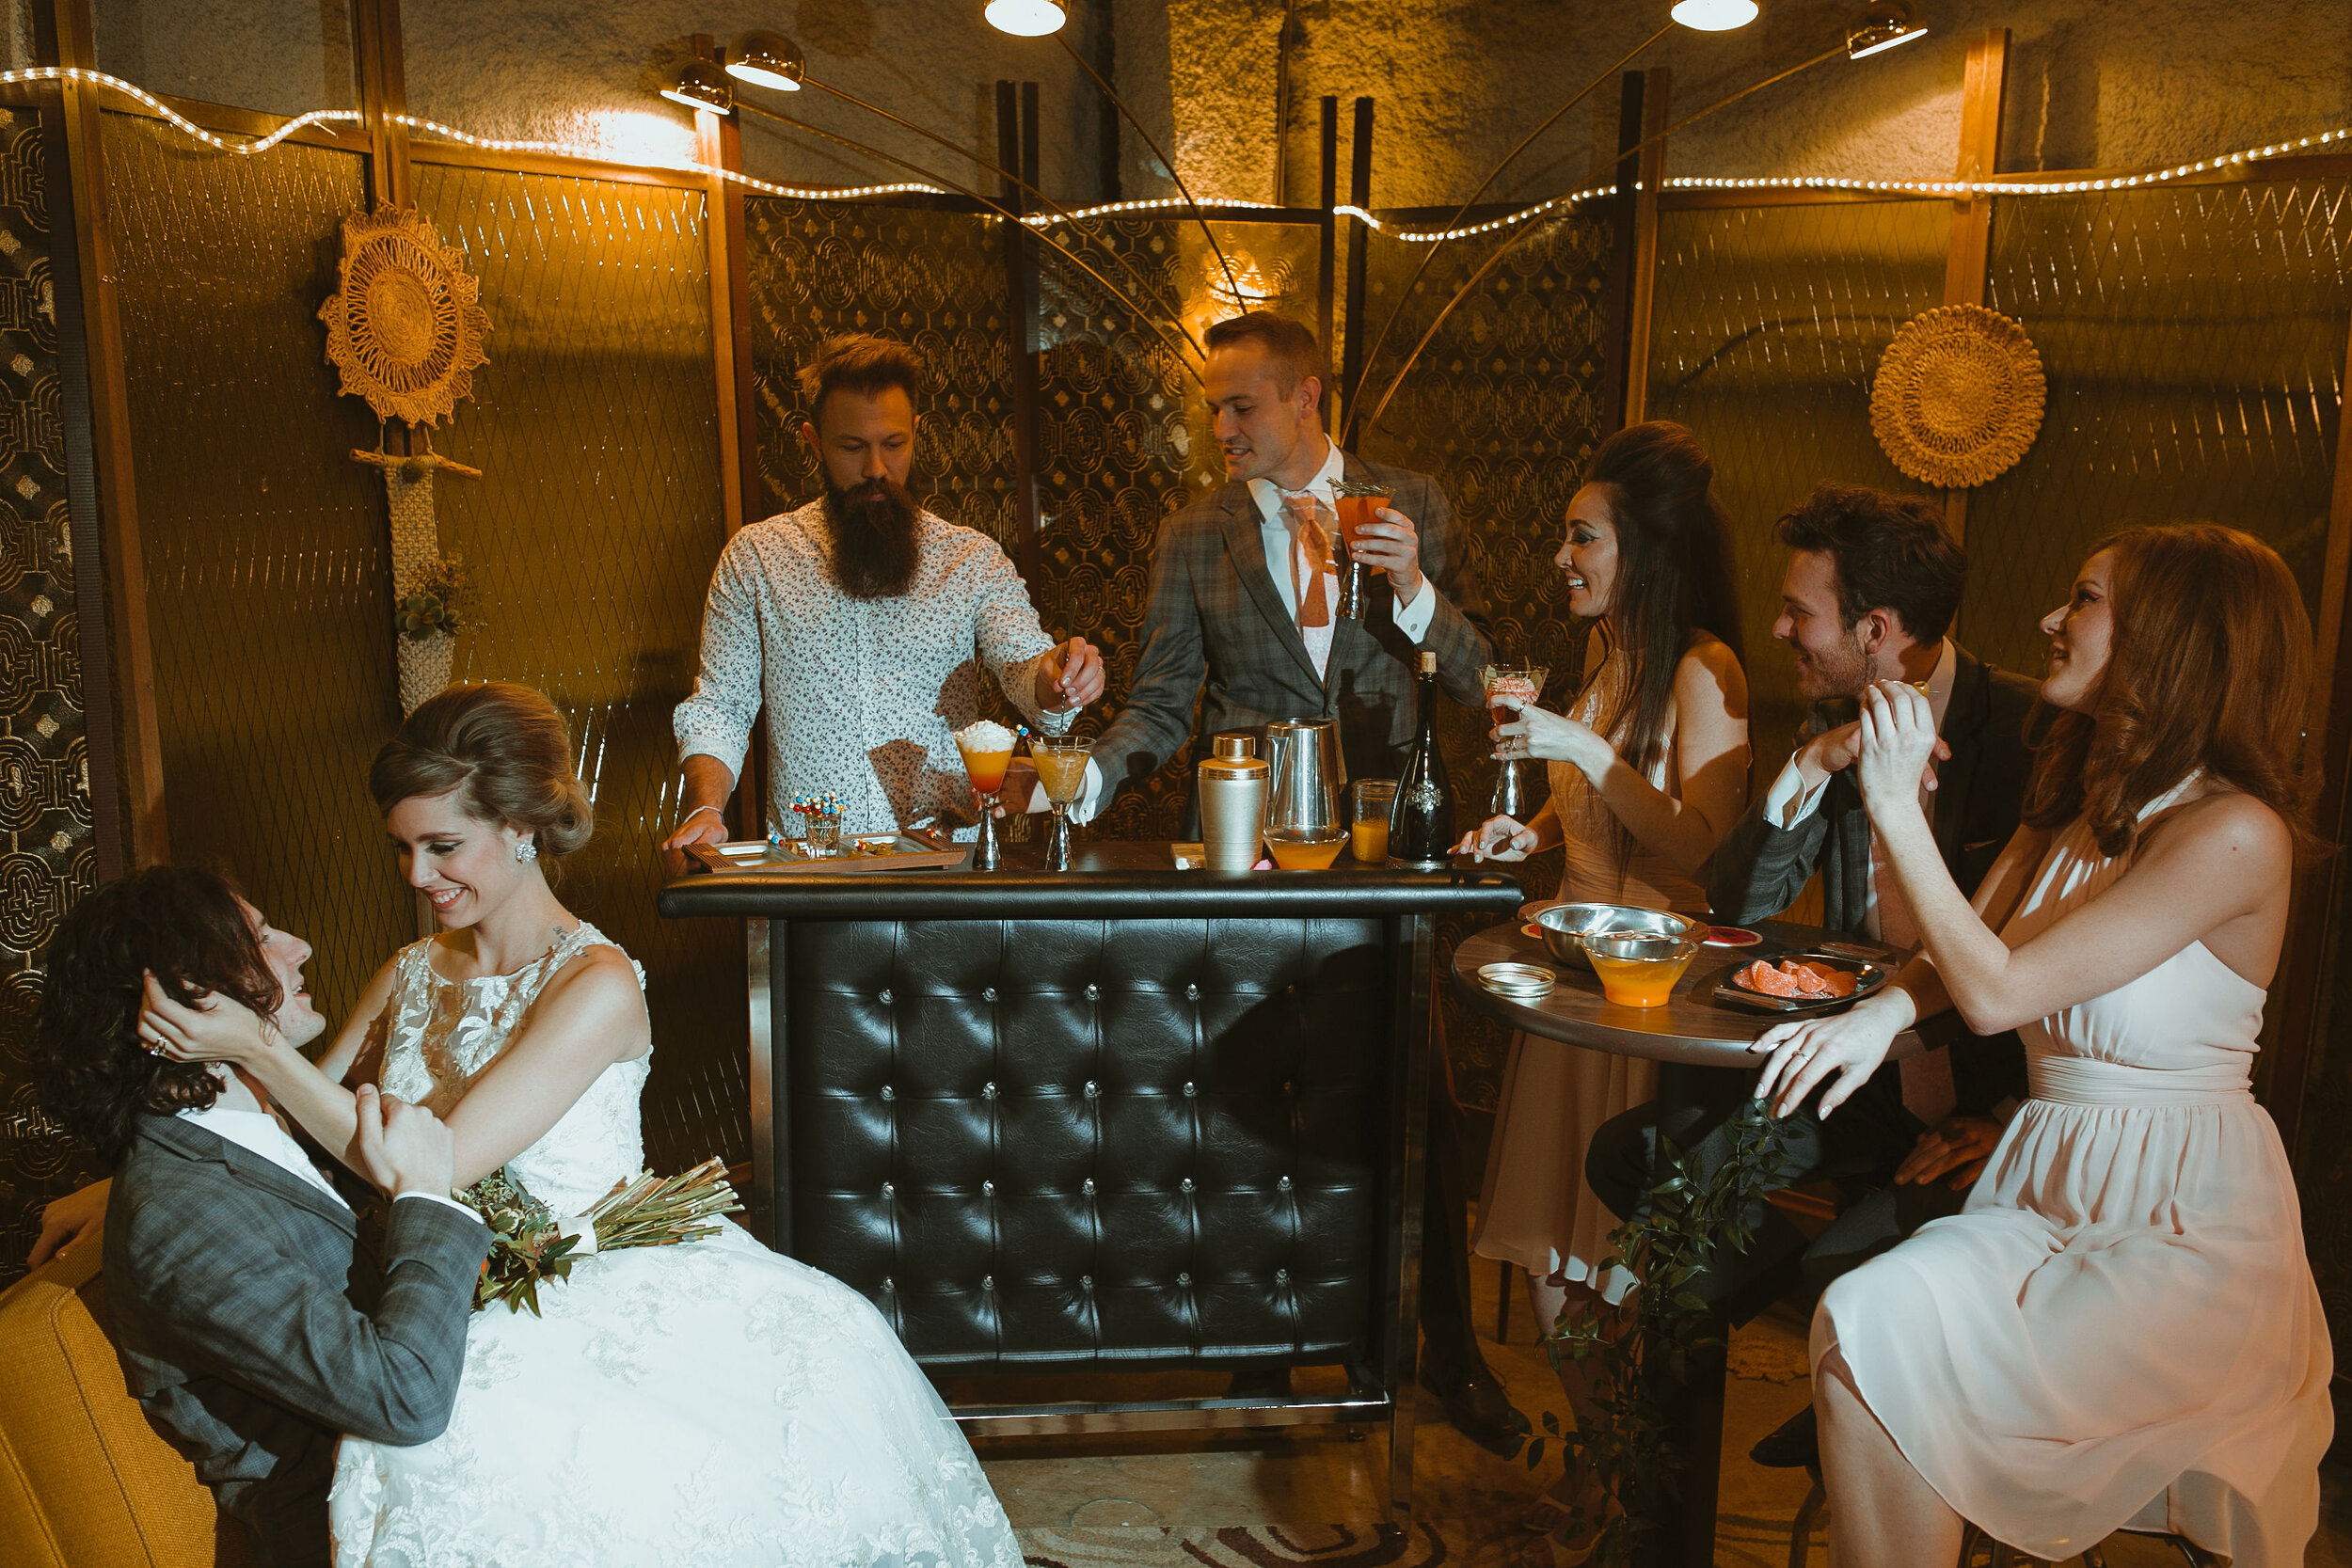 Mid century modern setting for wedding elopement in Iowa, vintage mini bar with bartender and bridal party toasting drinks with bride and groom looking at each other in chair